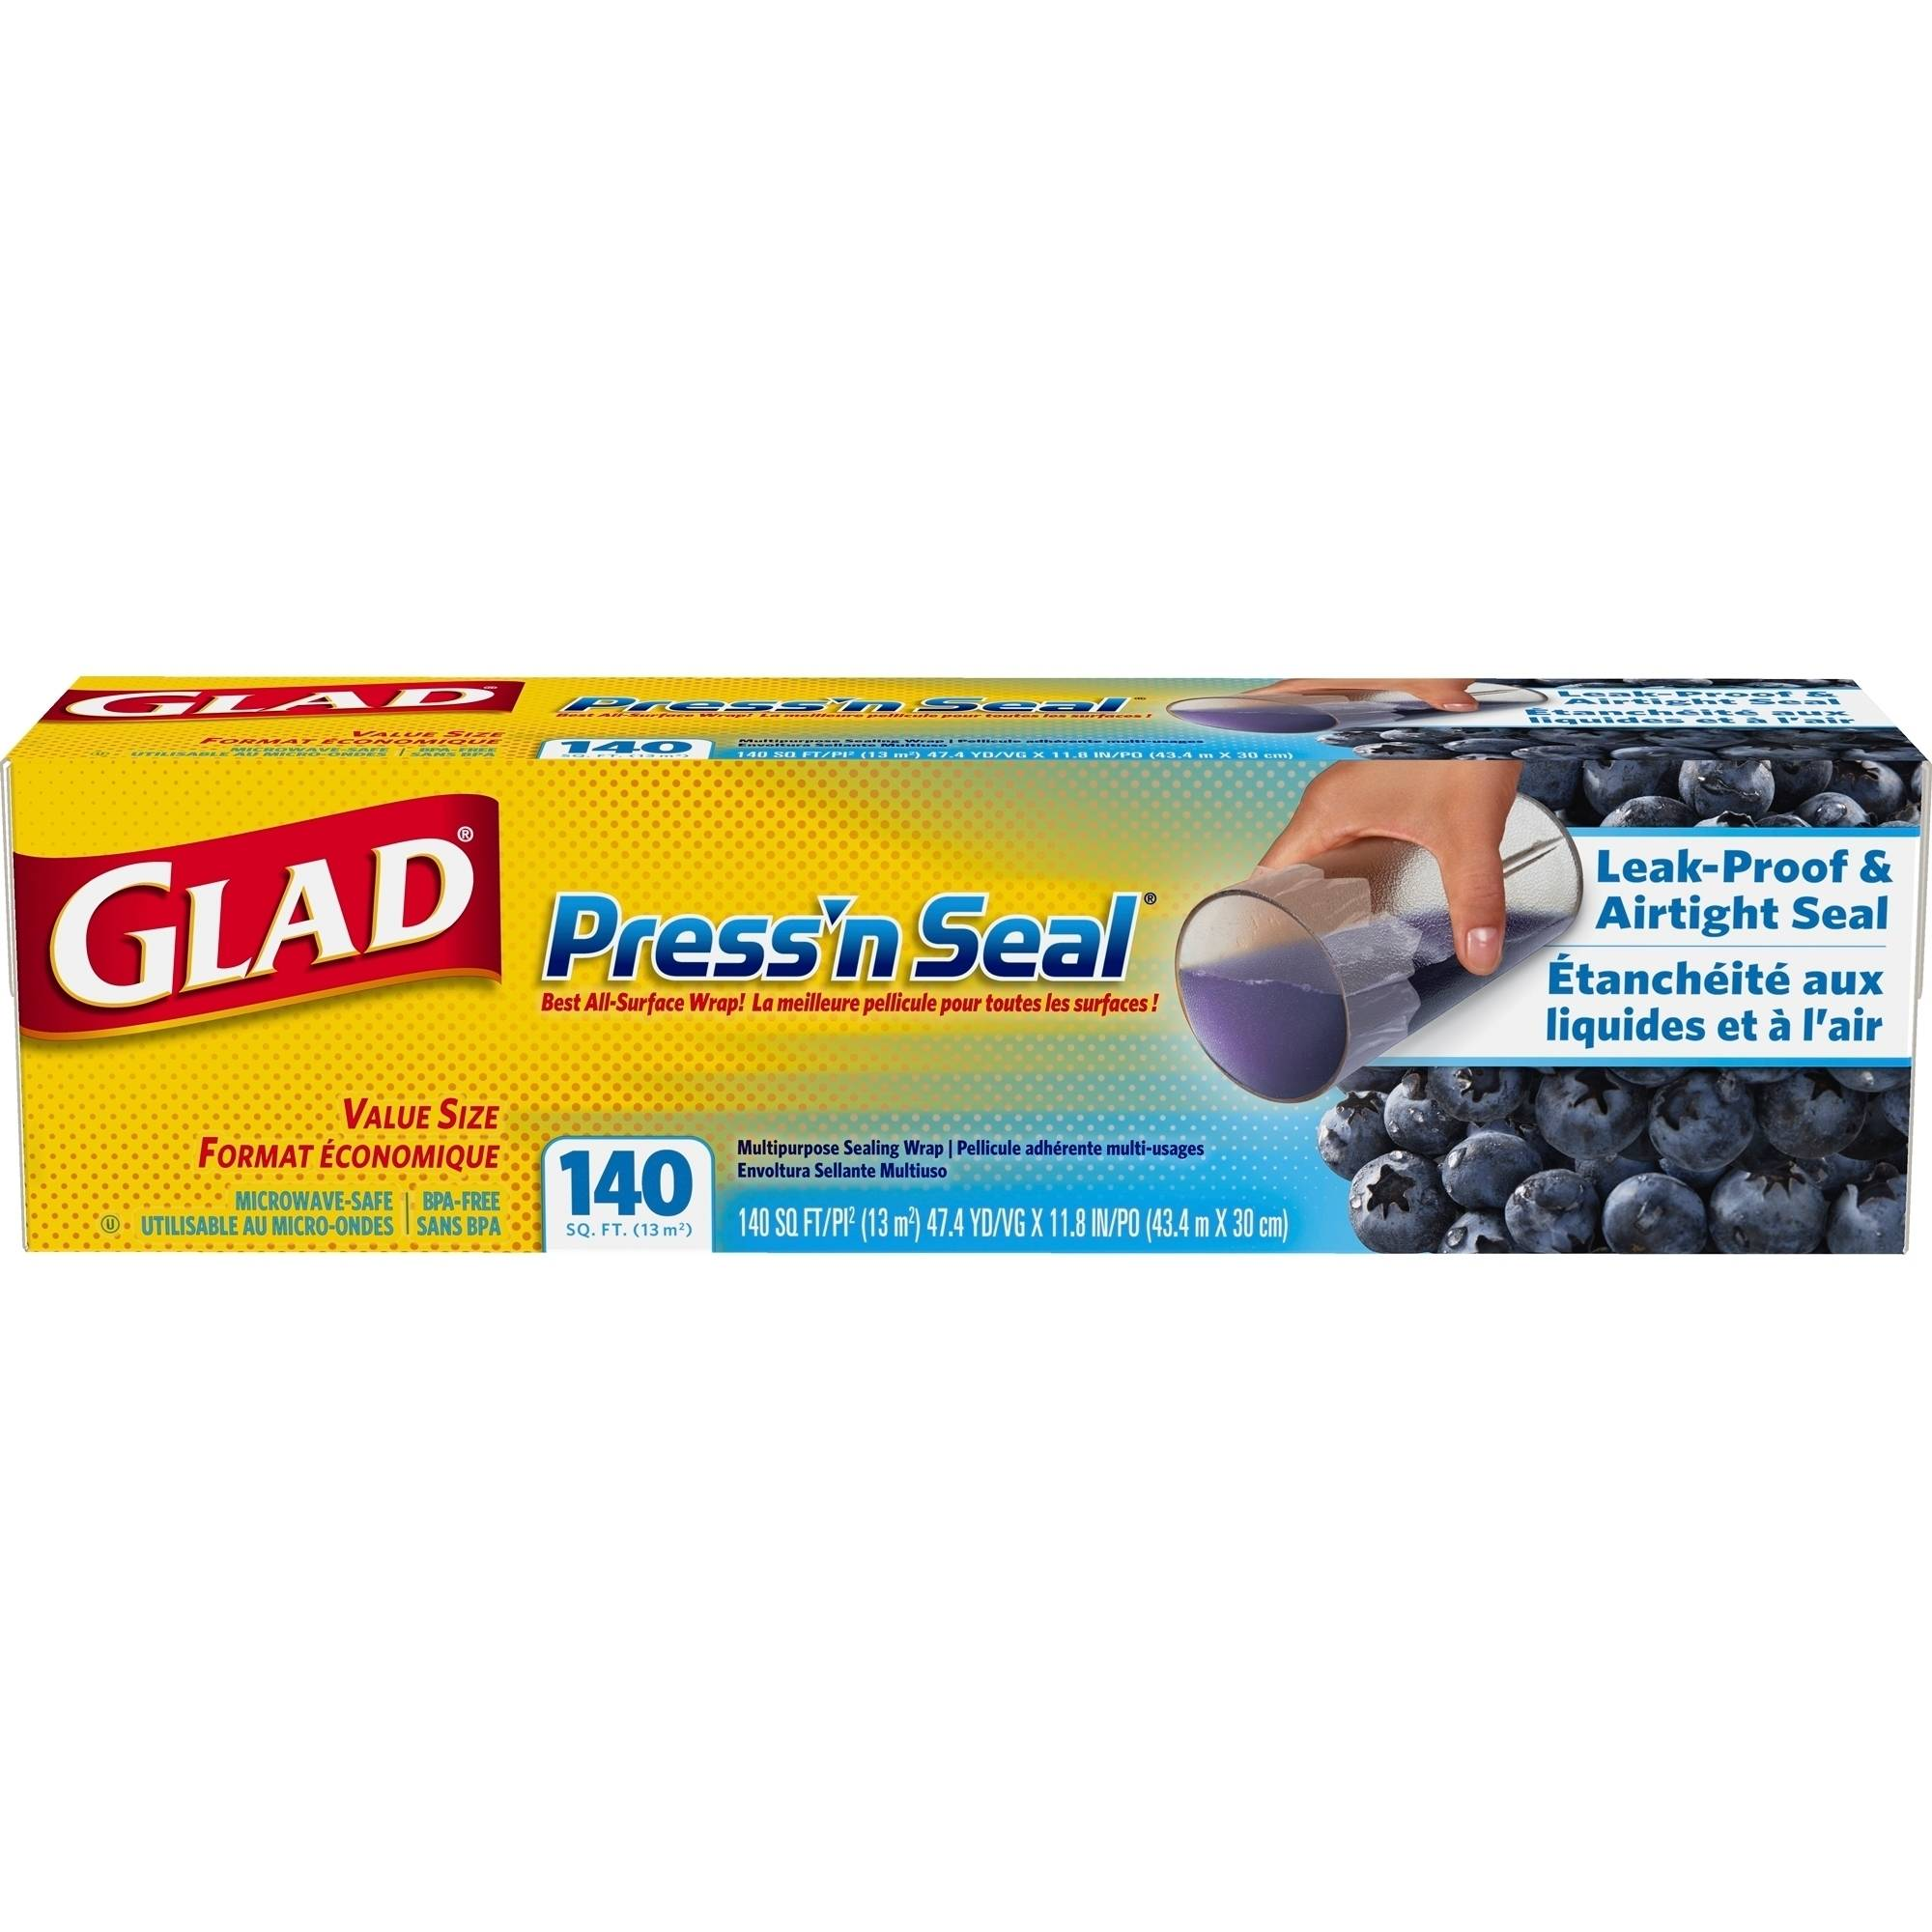 Glad Press'n Seal Wrap, 140 Square Foot Roll